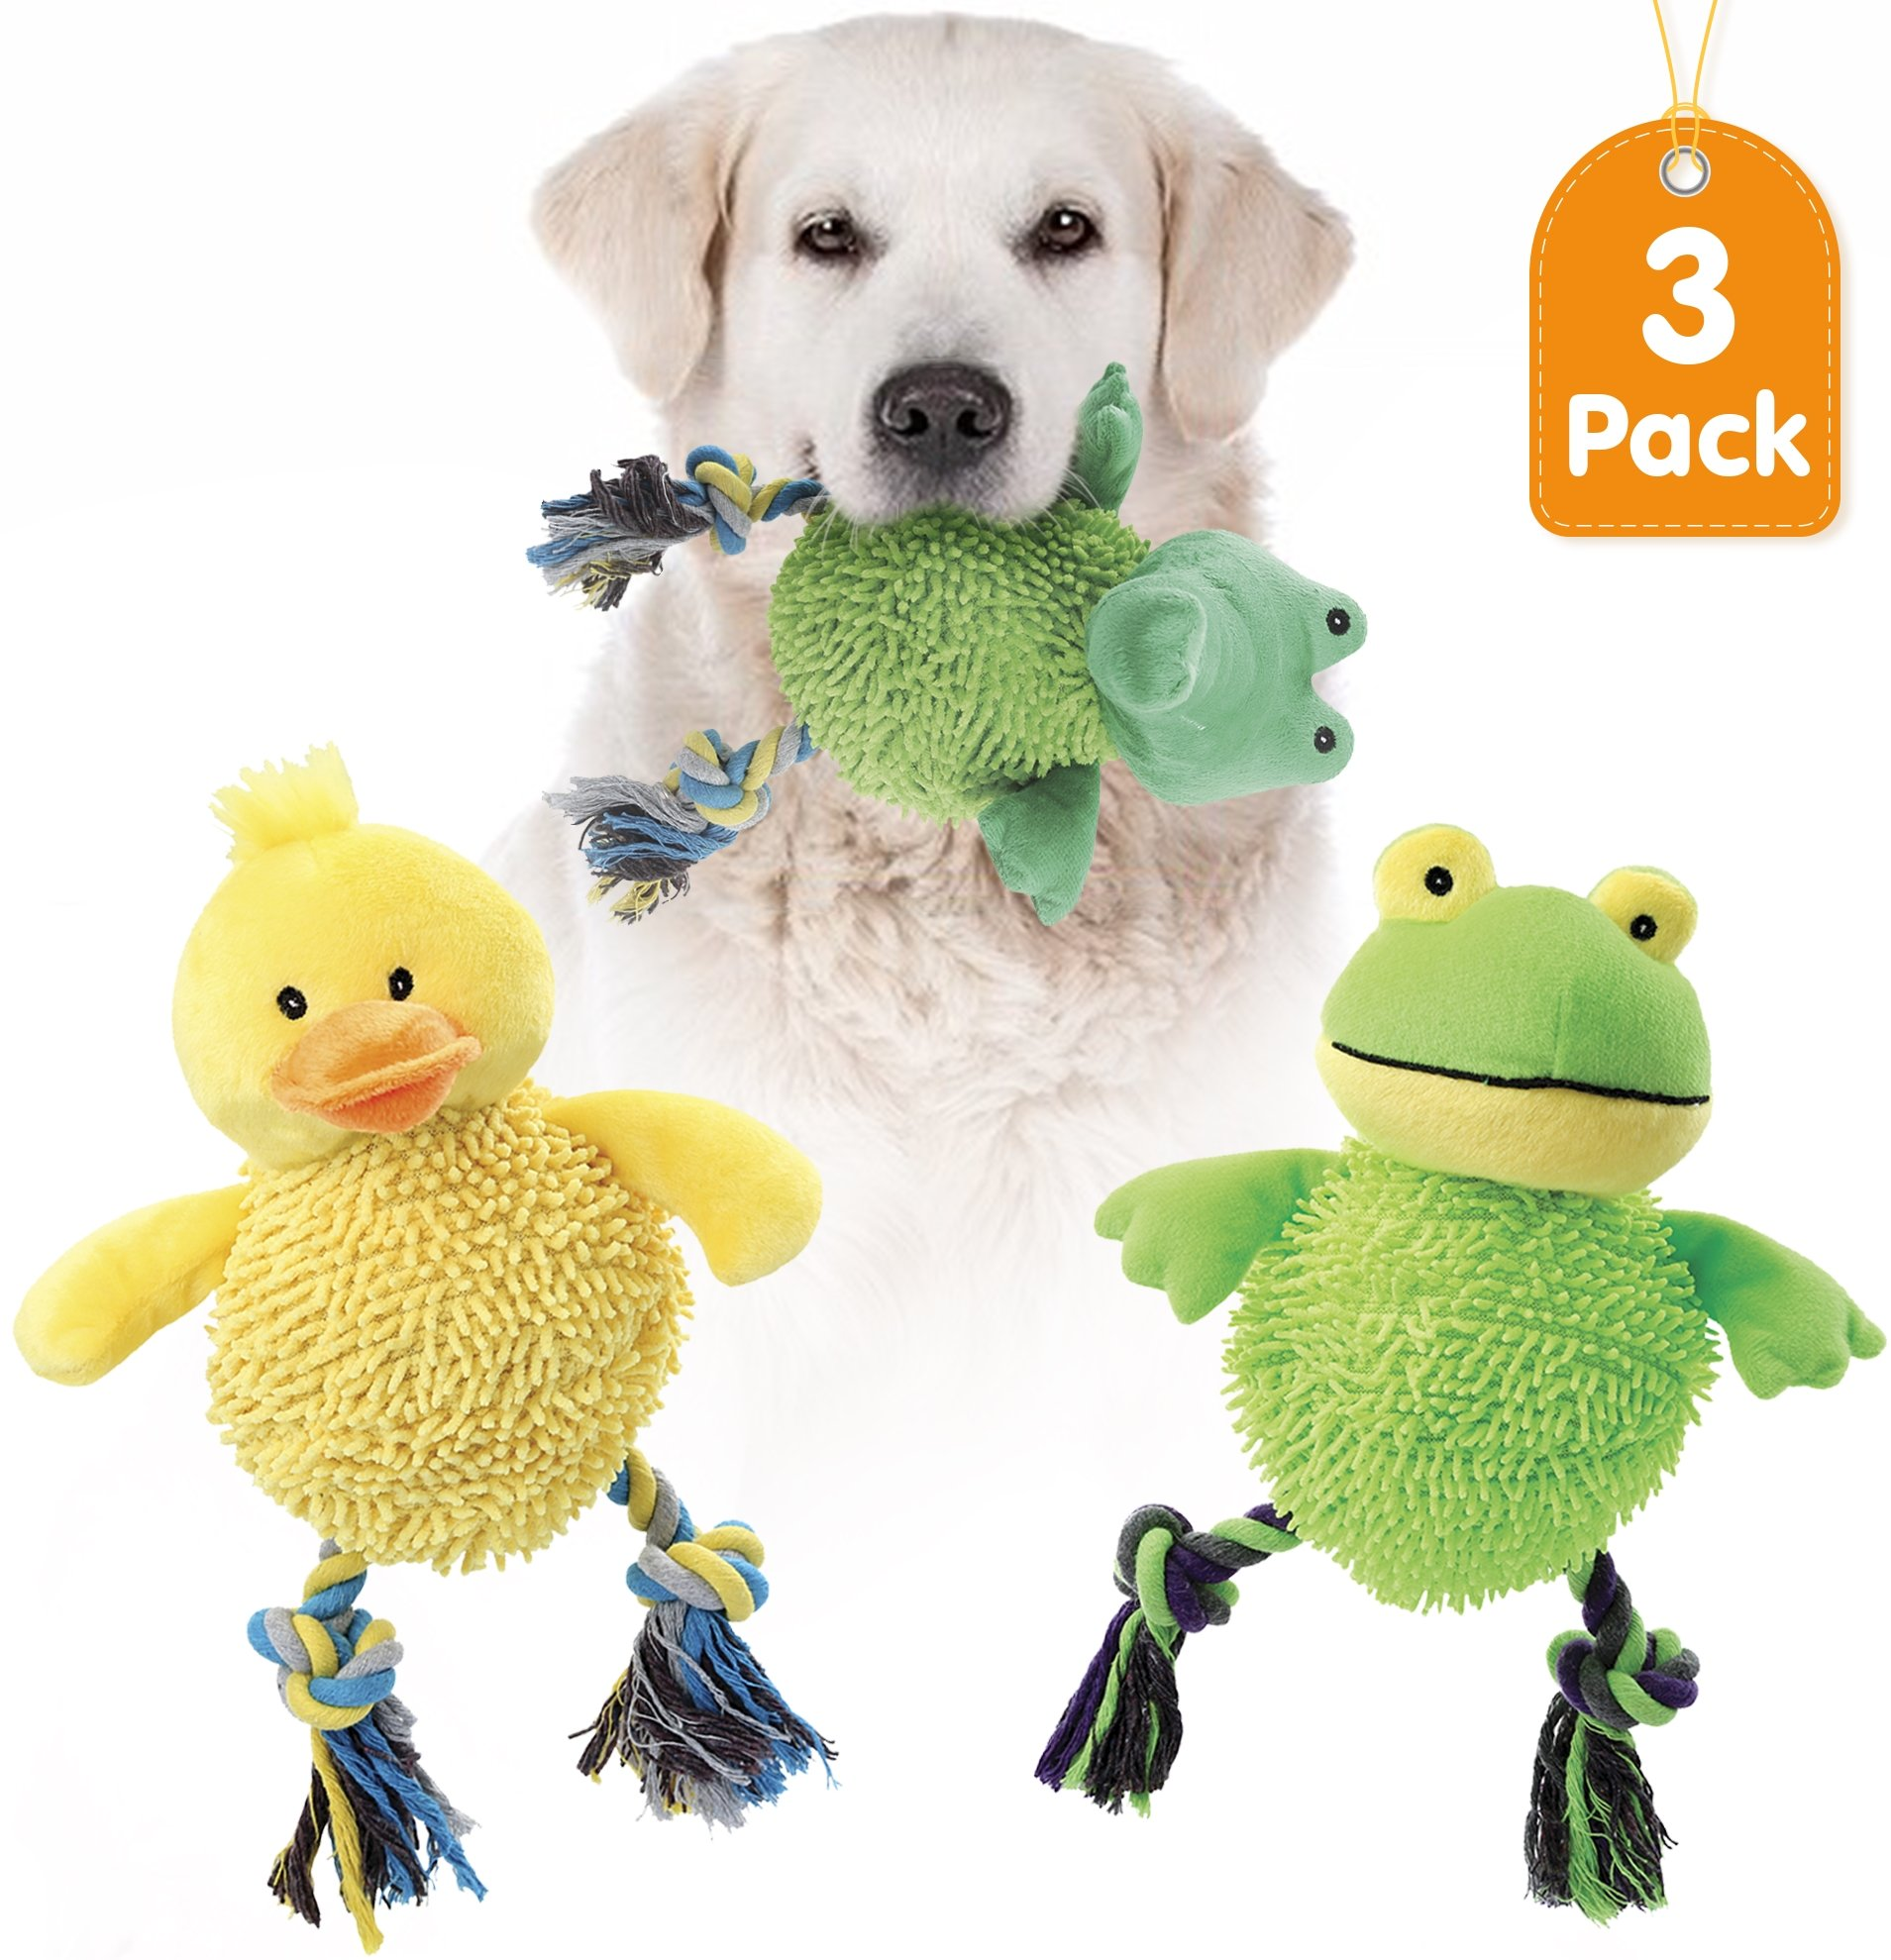 KLEEGER Laughing Large Plush Dog Toy: Tough Puppy Chew/Teething/Tug Of War Toy That Chuckles When Shaken (Set Of 3)